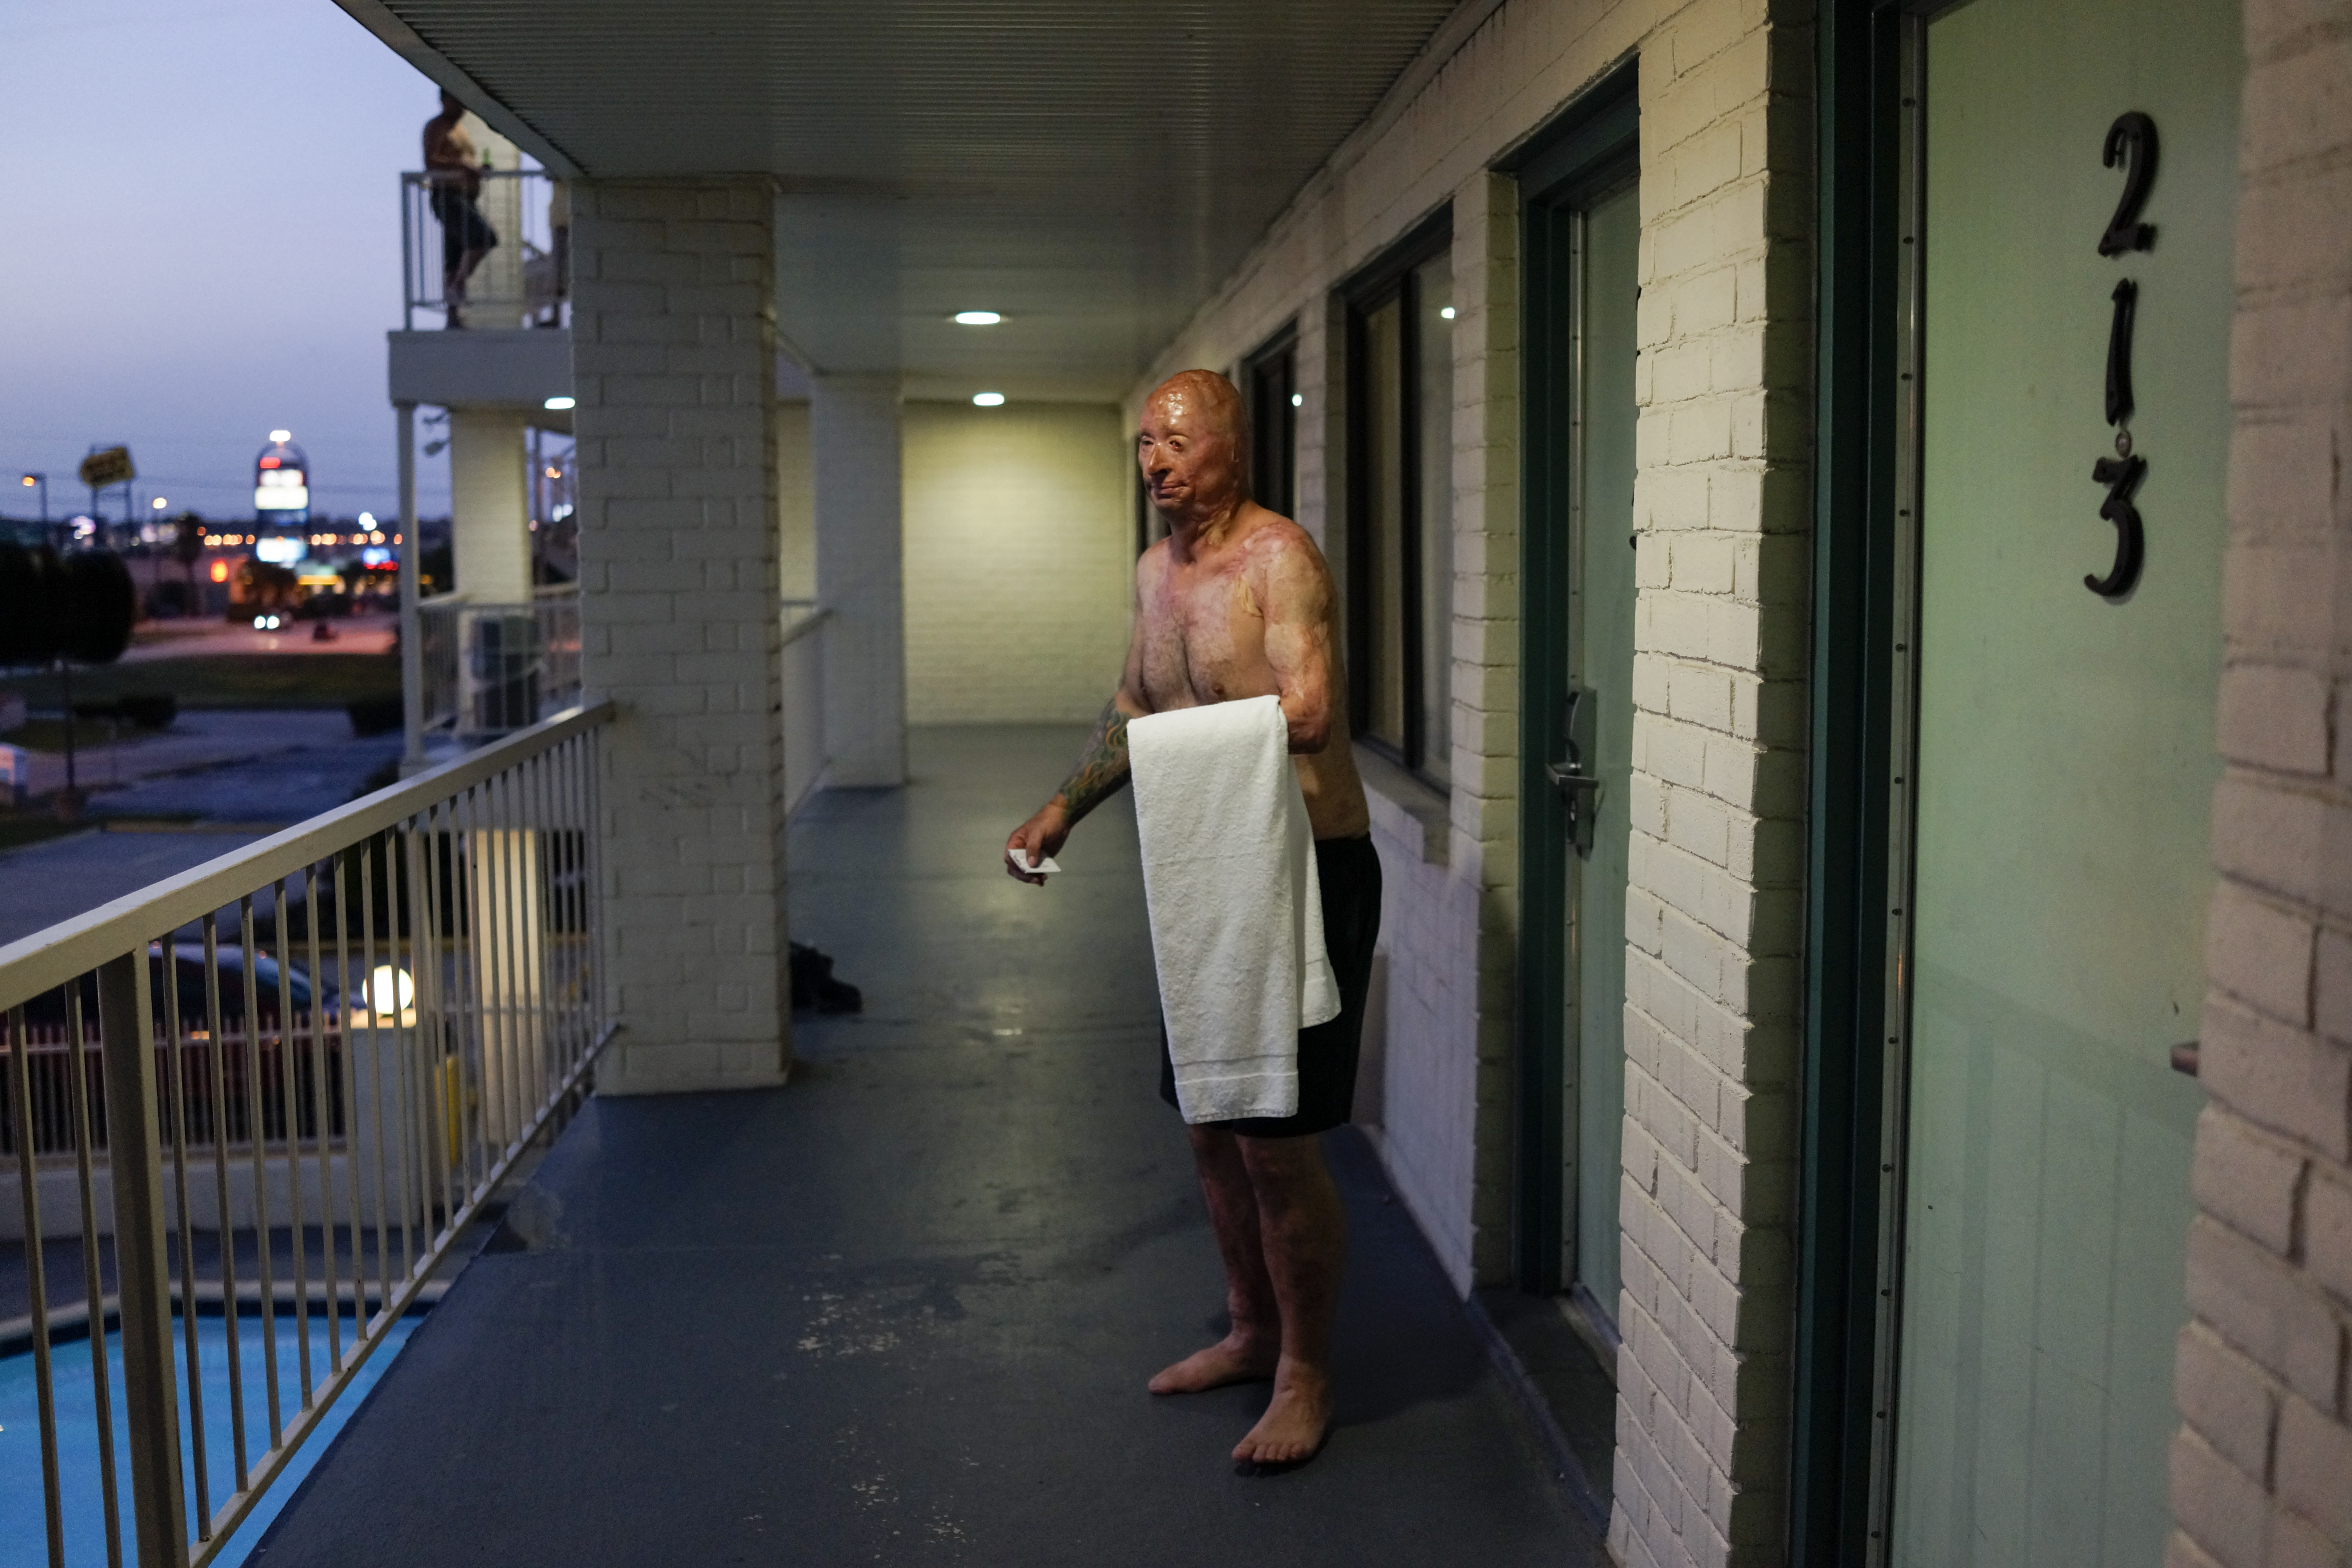 After visiting Rodney's father, Bobby takes a swim in his hotel in Humble, Texas. 2013.